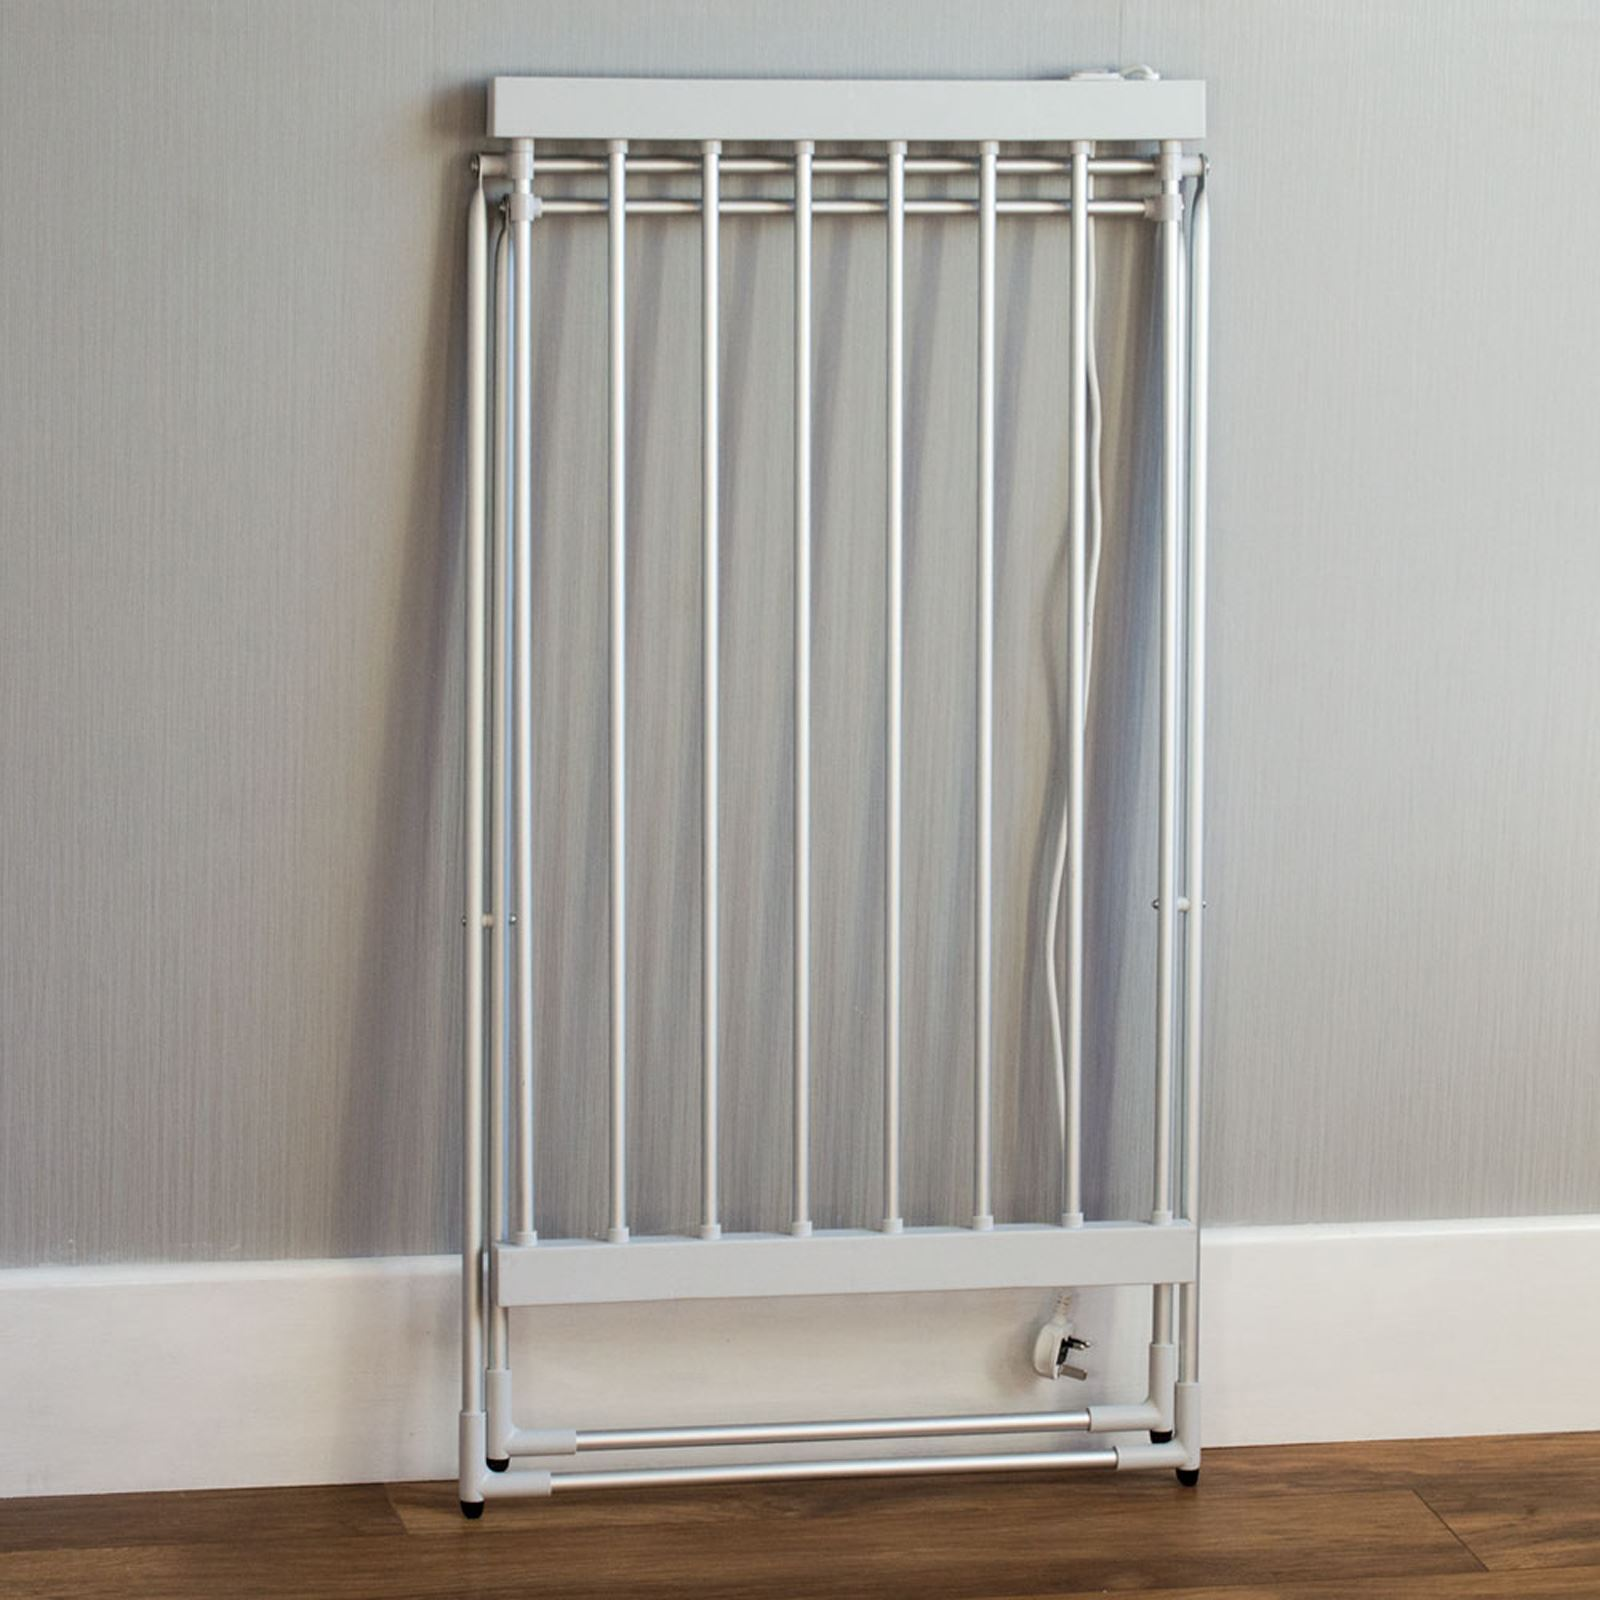 Heated clothes rack amazon